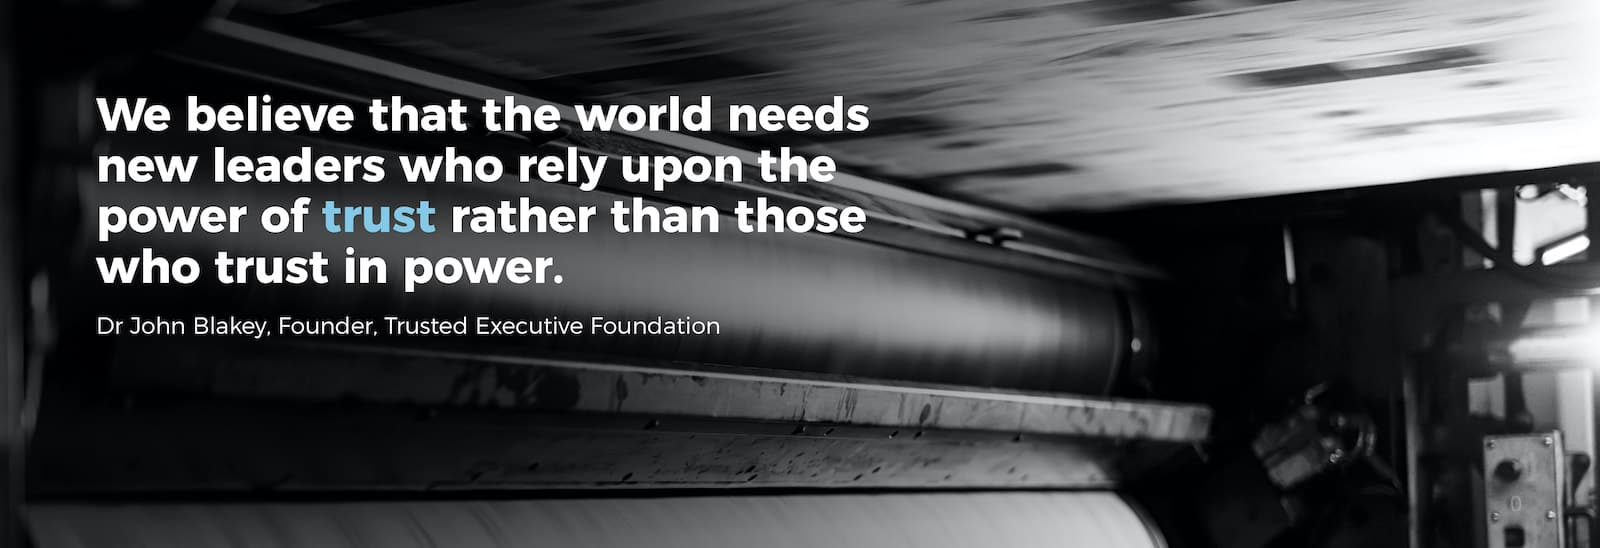 In these stormy and turbulent times, trust has died. Trust has always been important through-out our 130 years of the FT. John Ridding, CEO, FT Group